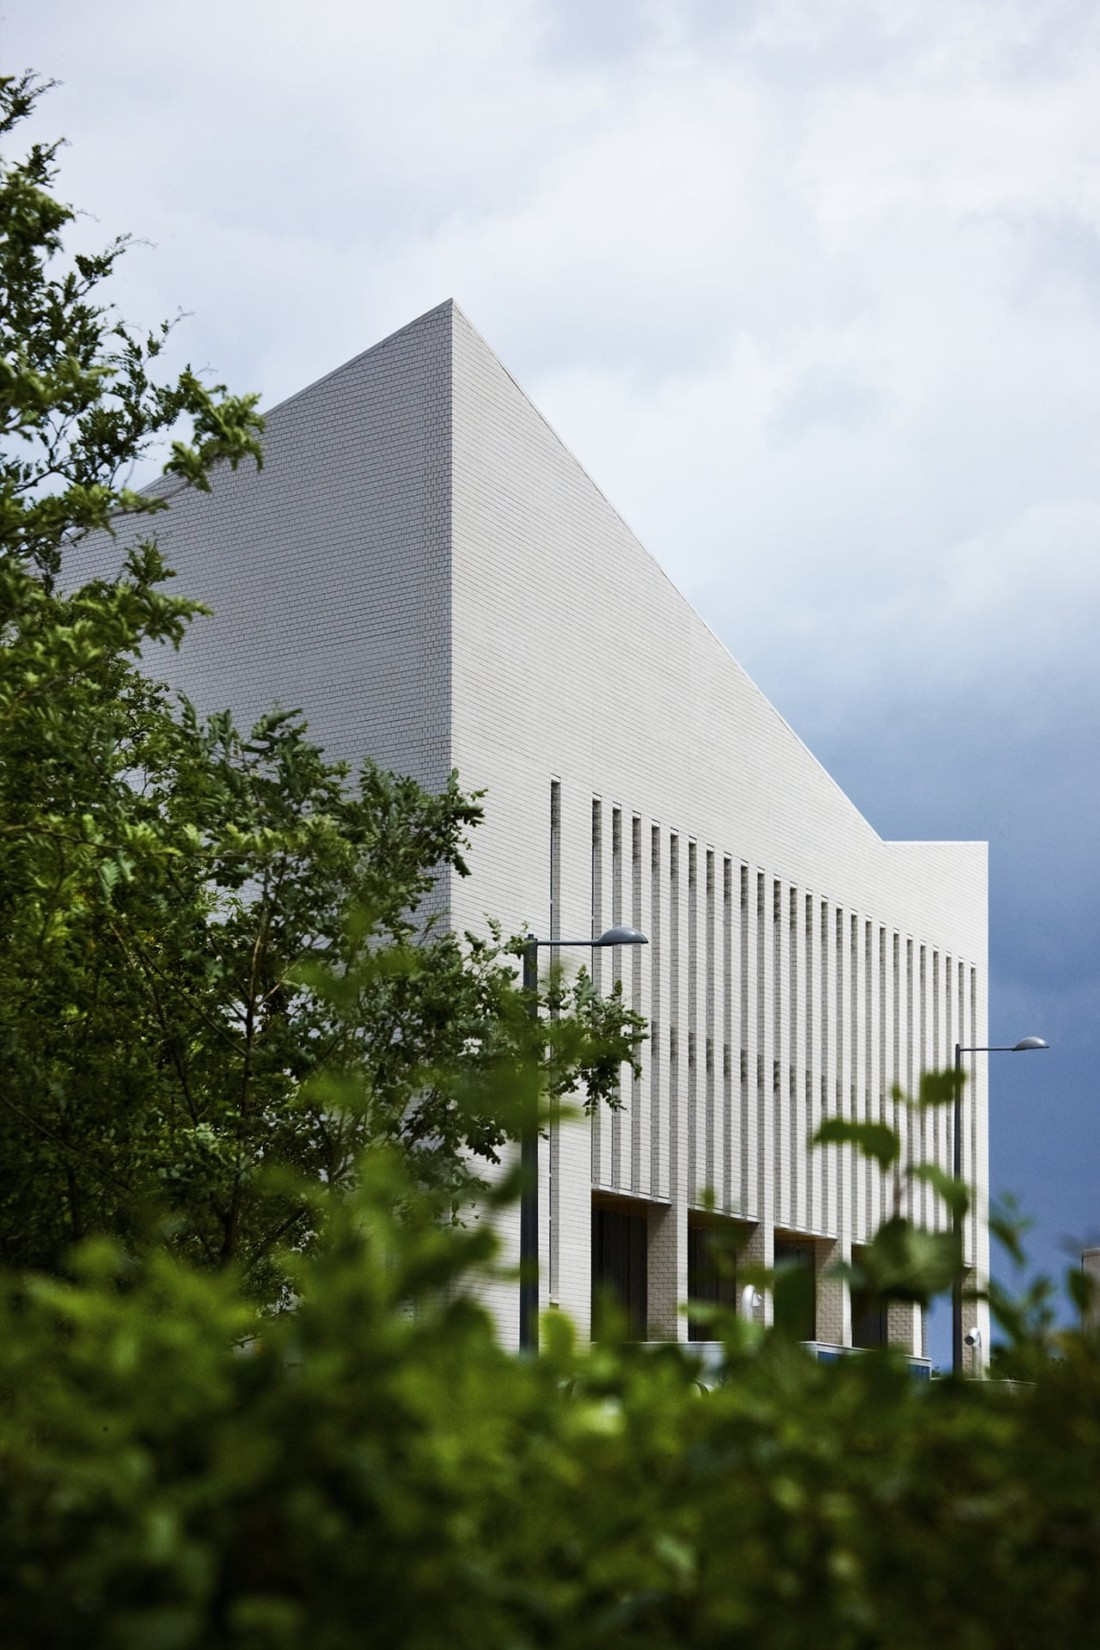 Projects Health Sir Ludwig Guttmann Health and Wellbeing Centre facade Penoyre and Prasad